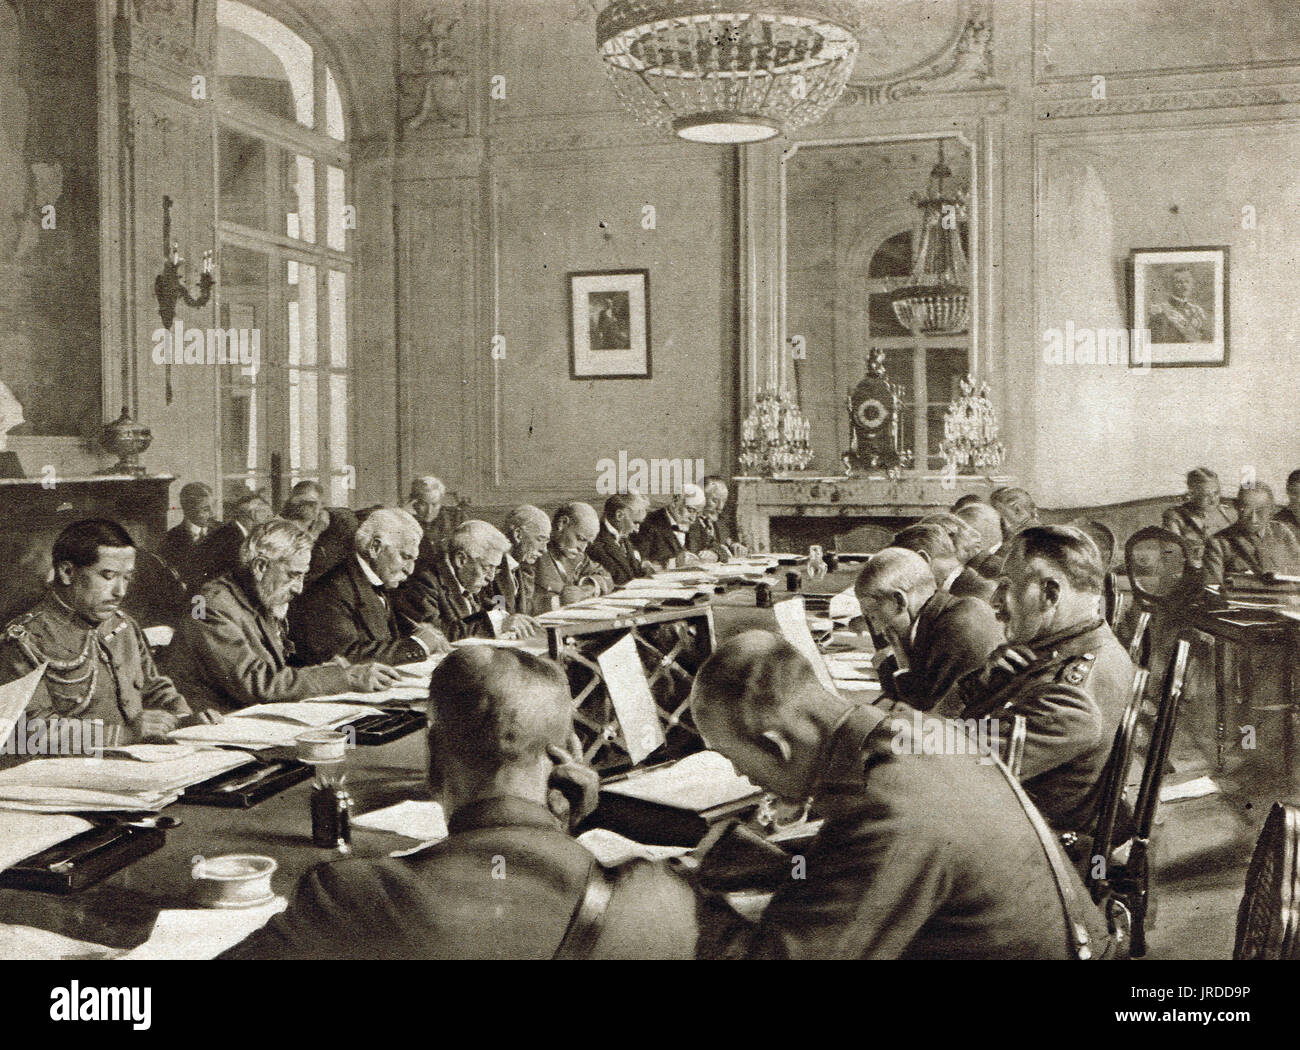 Inter Allied conference at Versailles - Stock Image